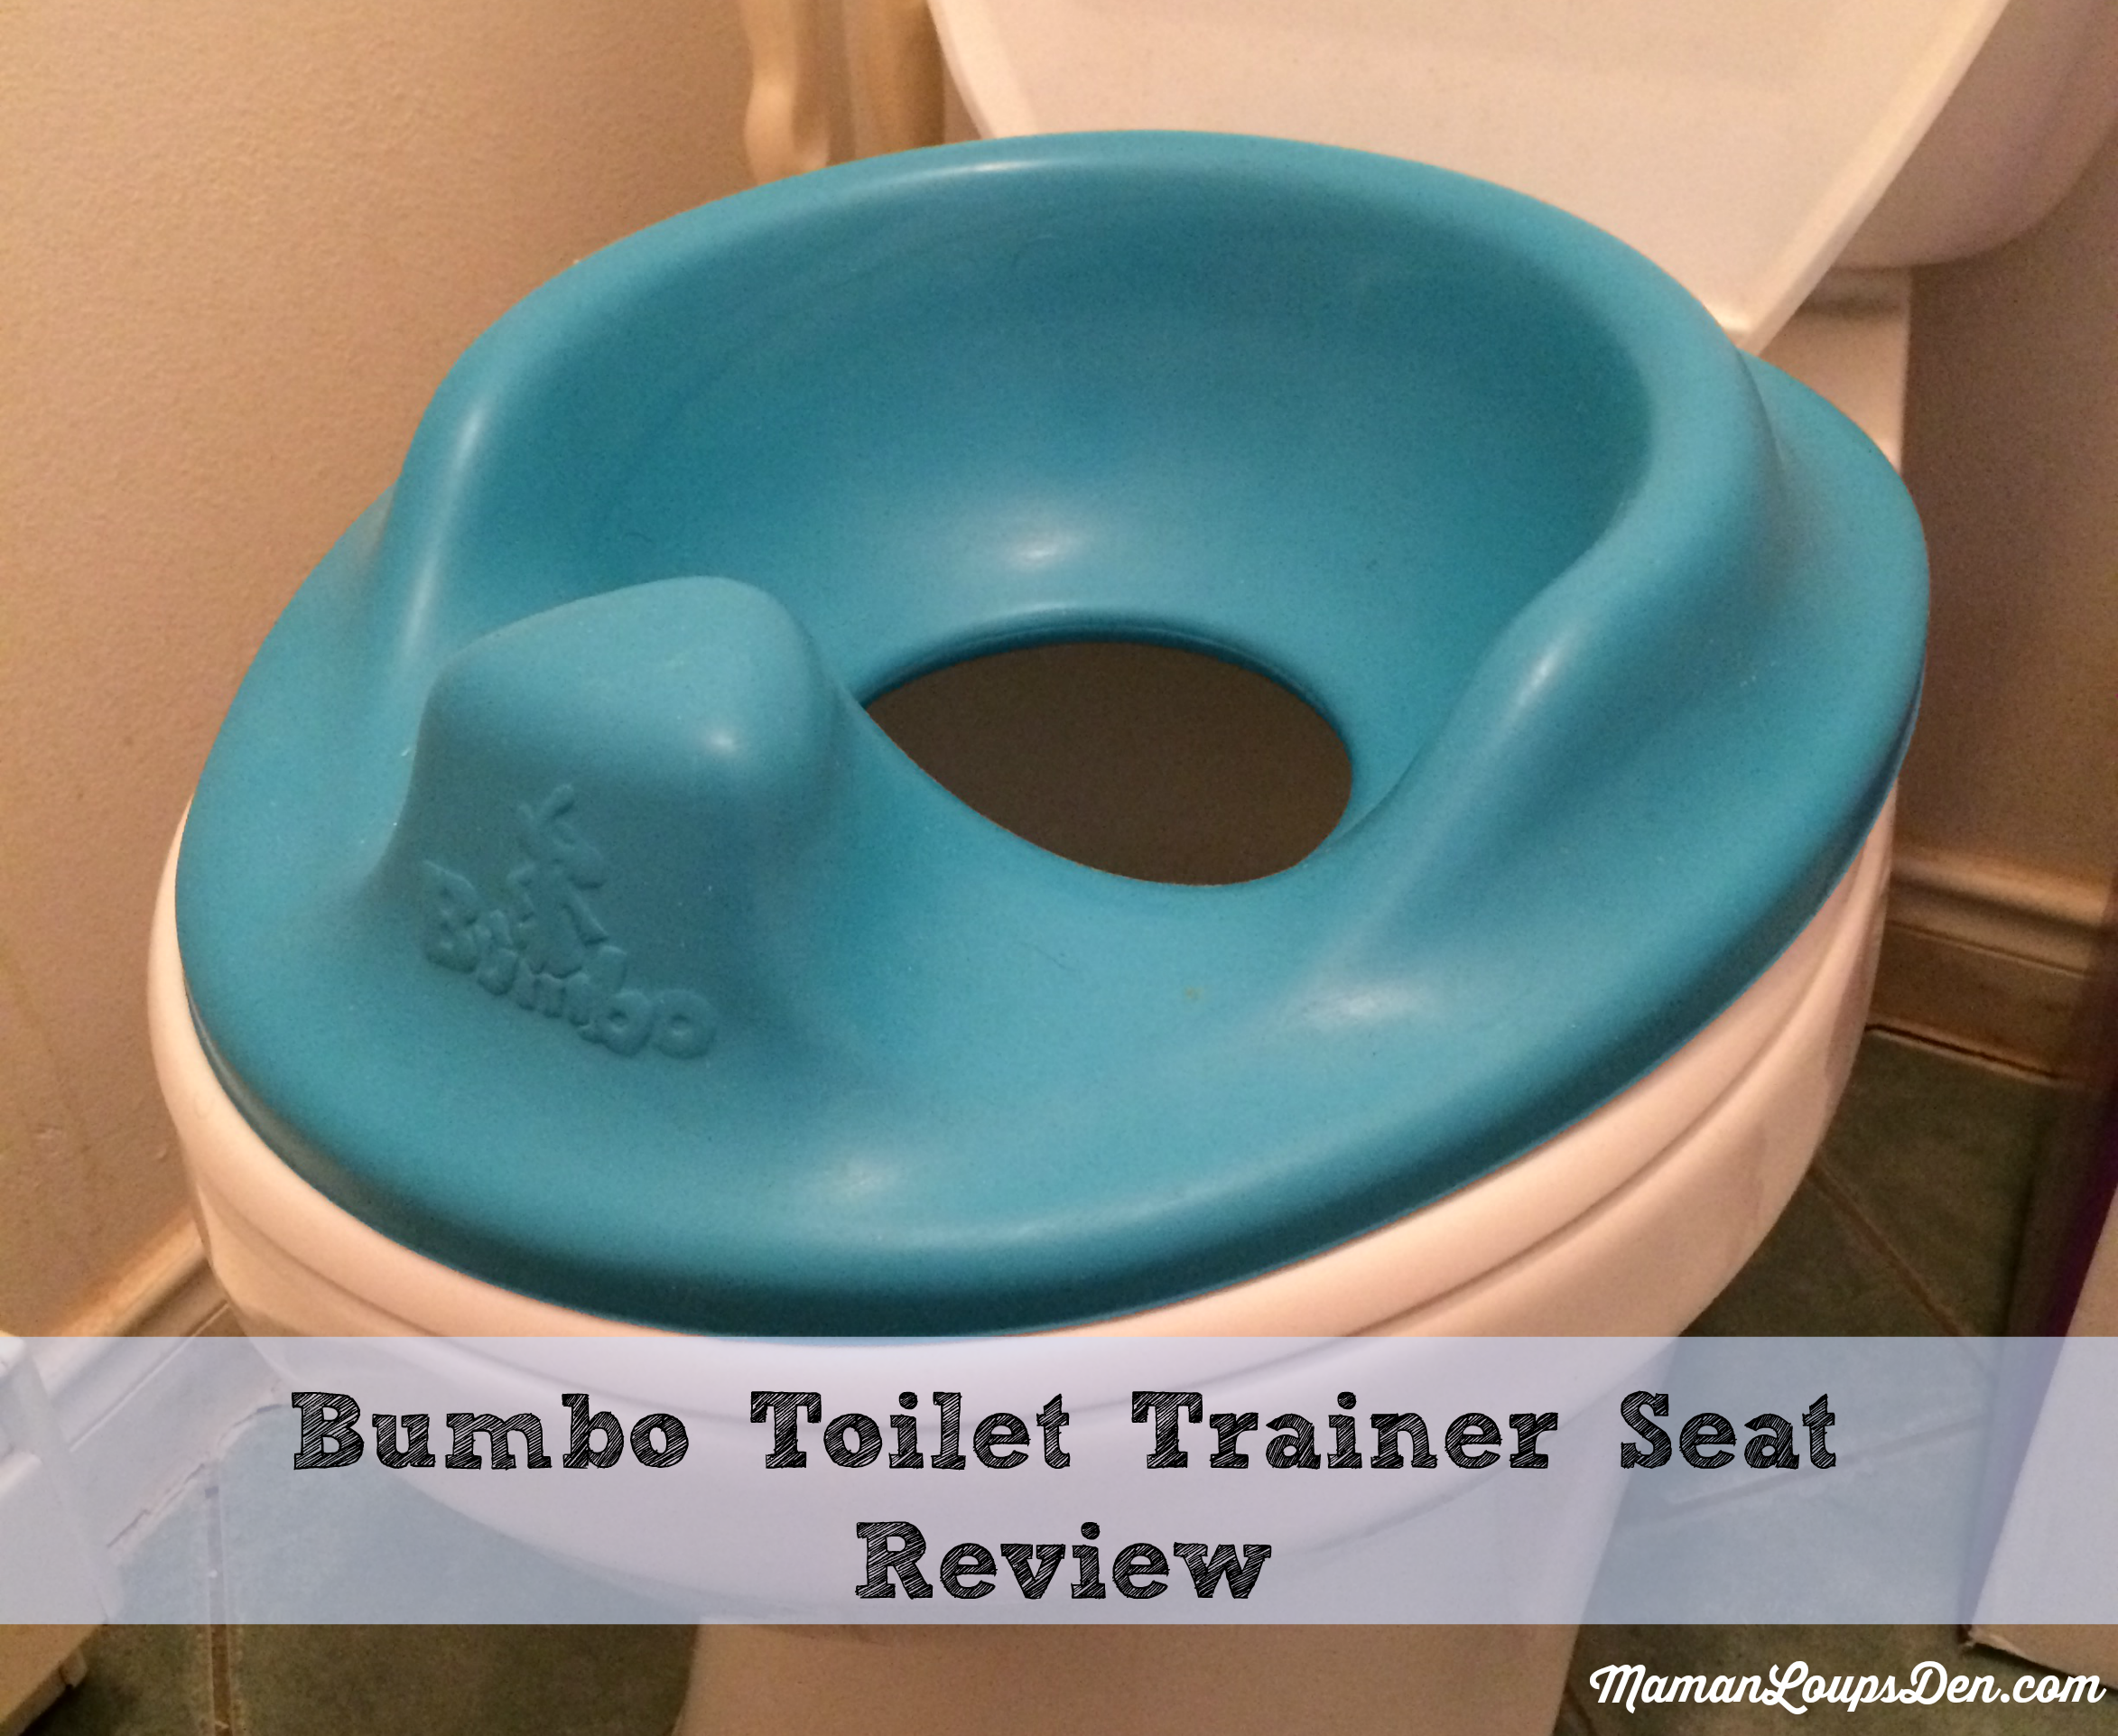 Bumbo Toilet Trainer Seat Review